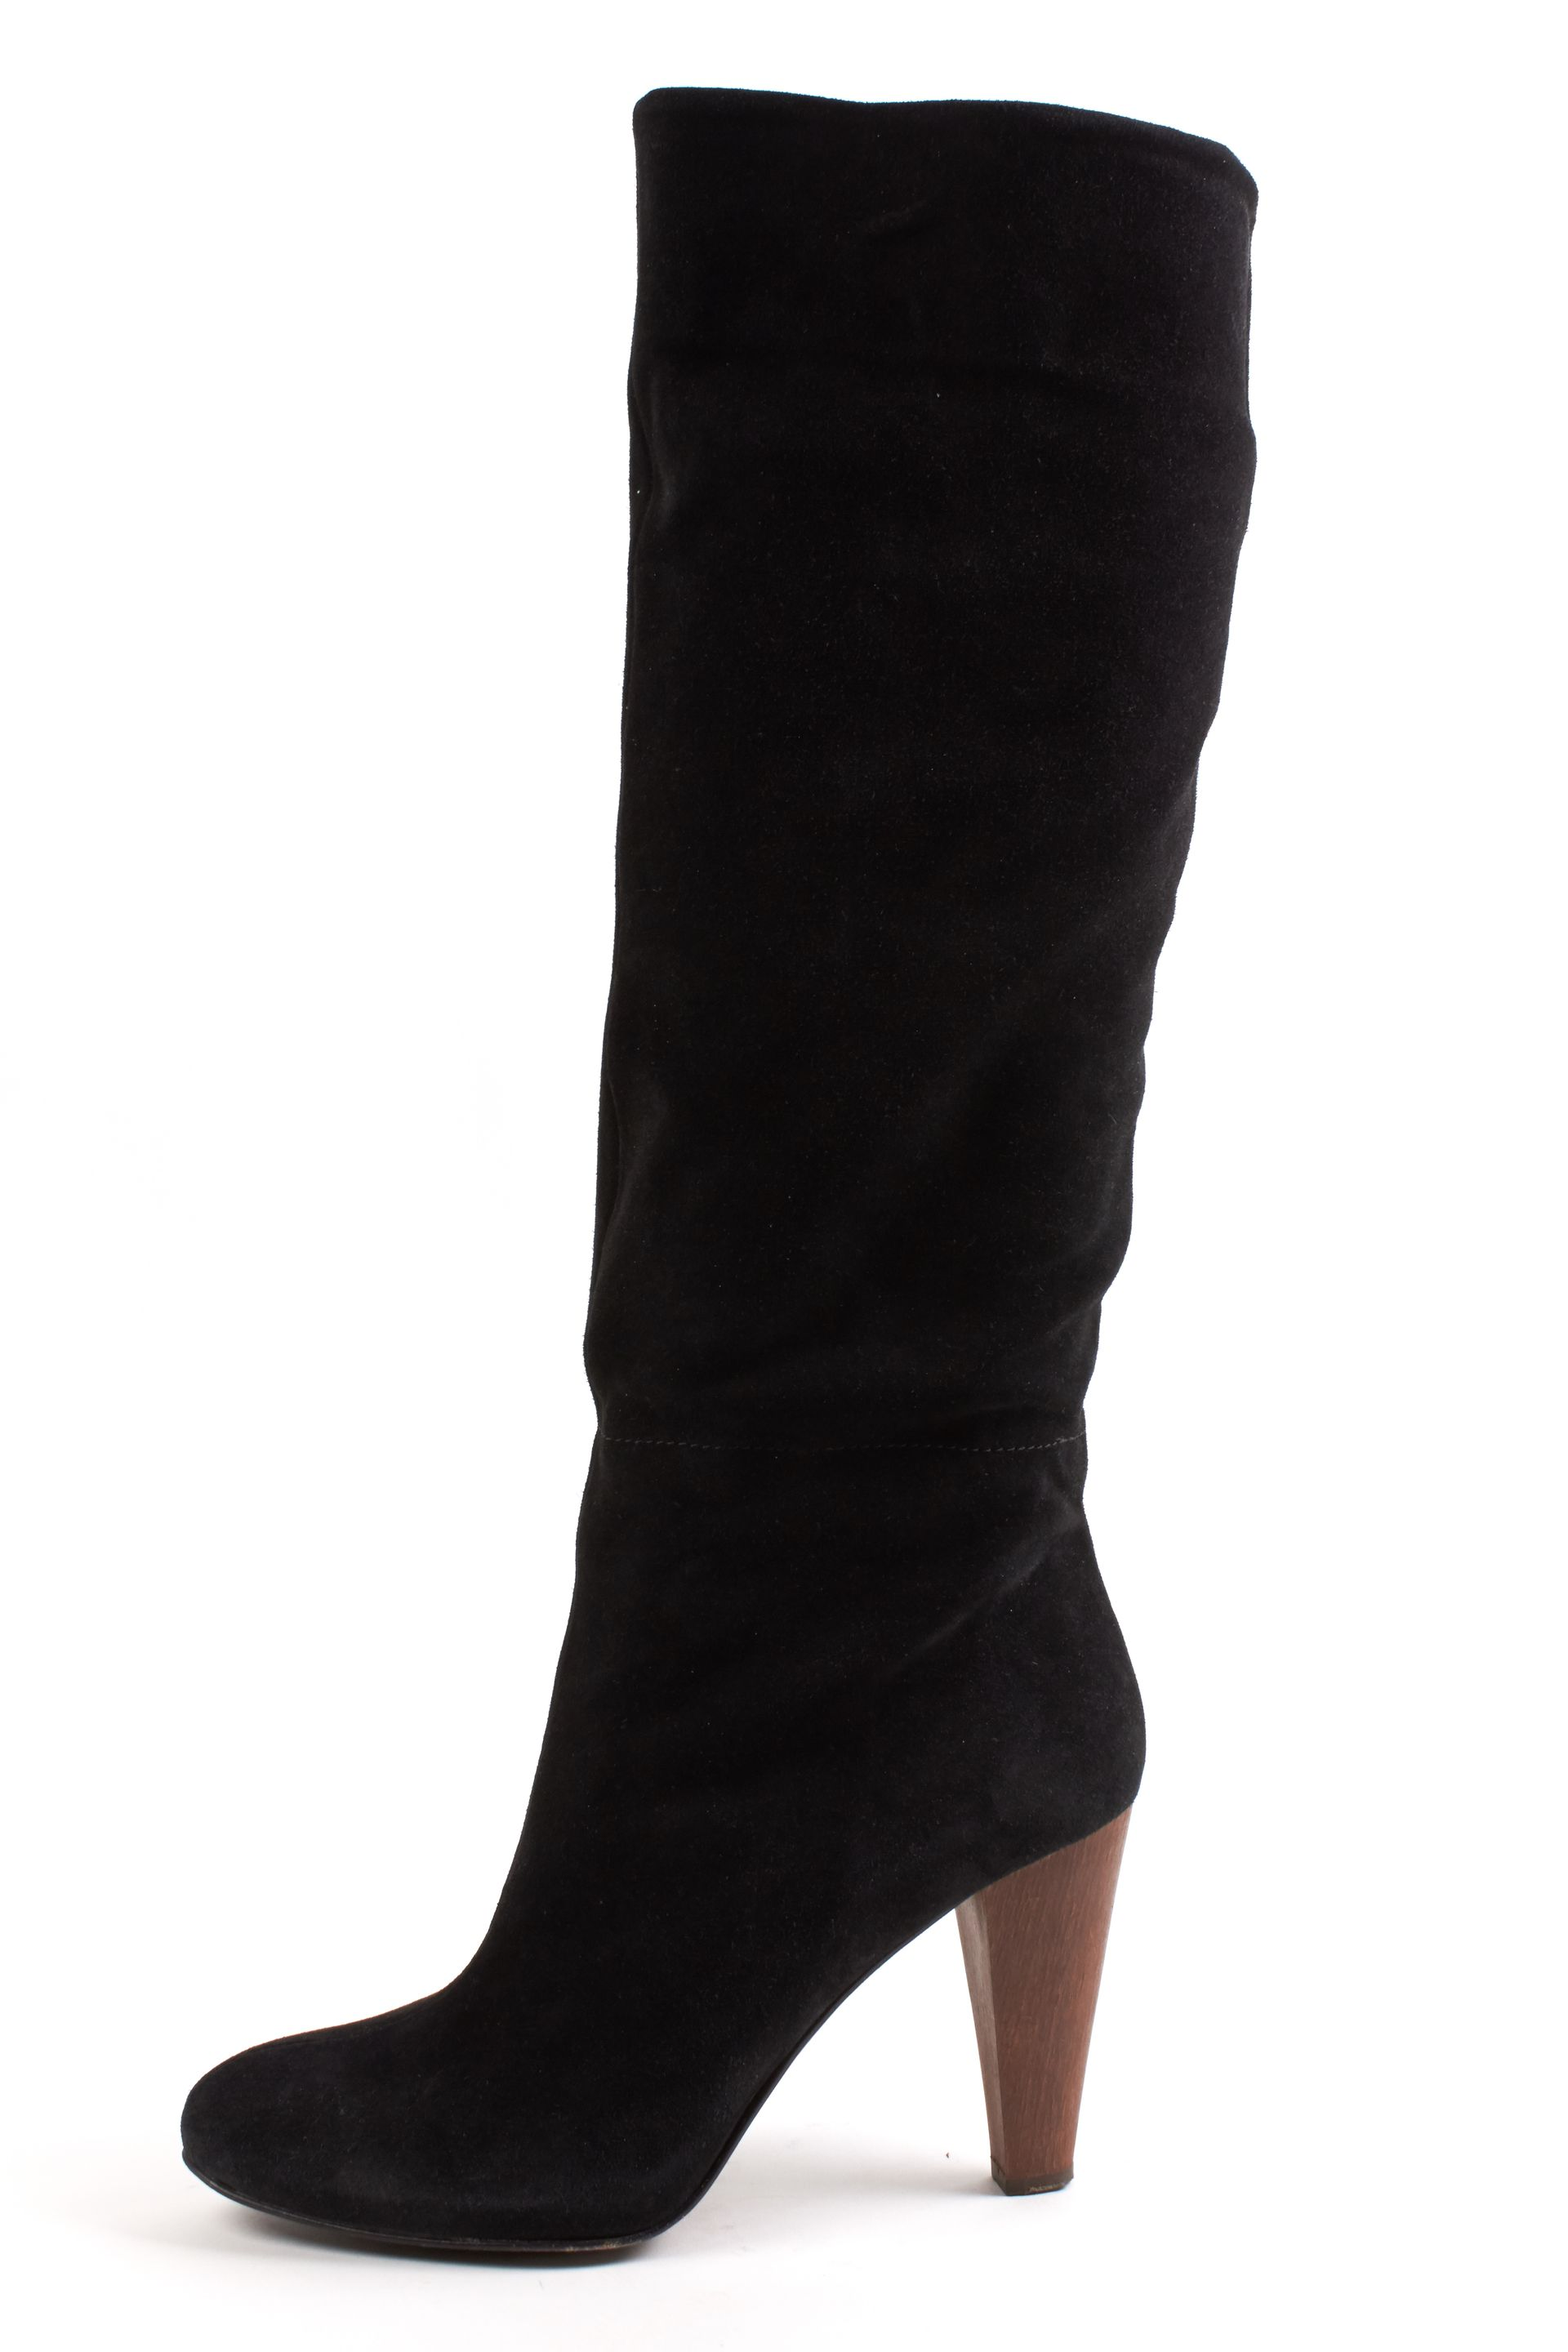 Joie Black Suede Pumps Knee-High Boots | Material World